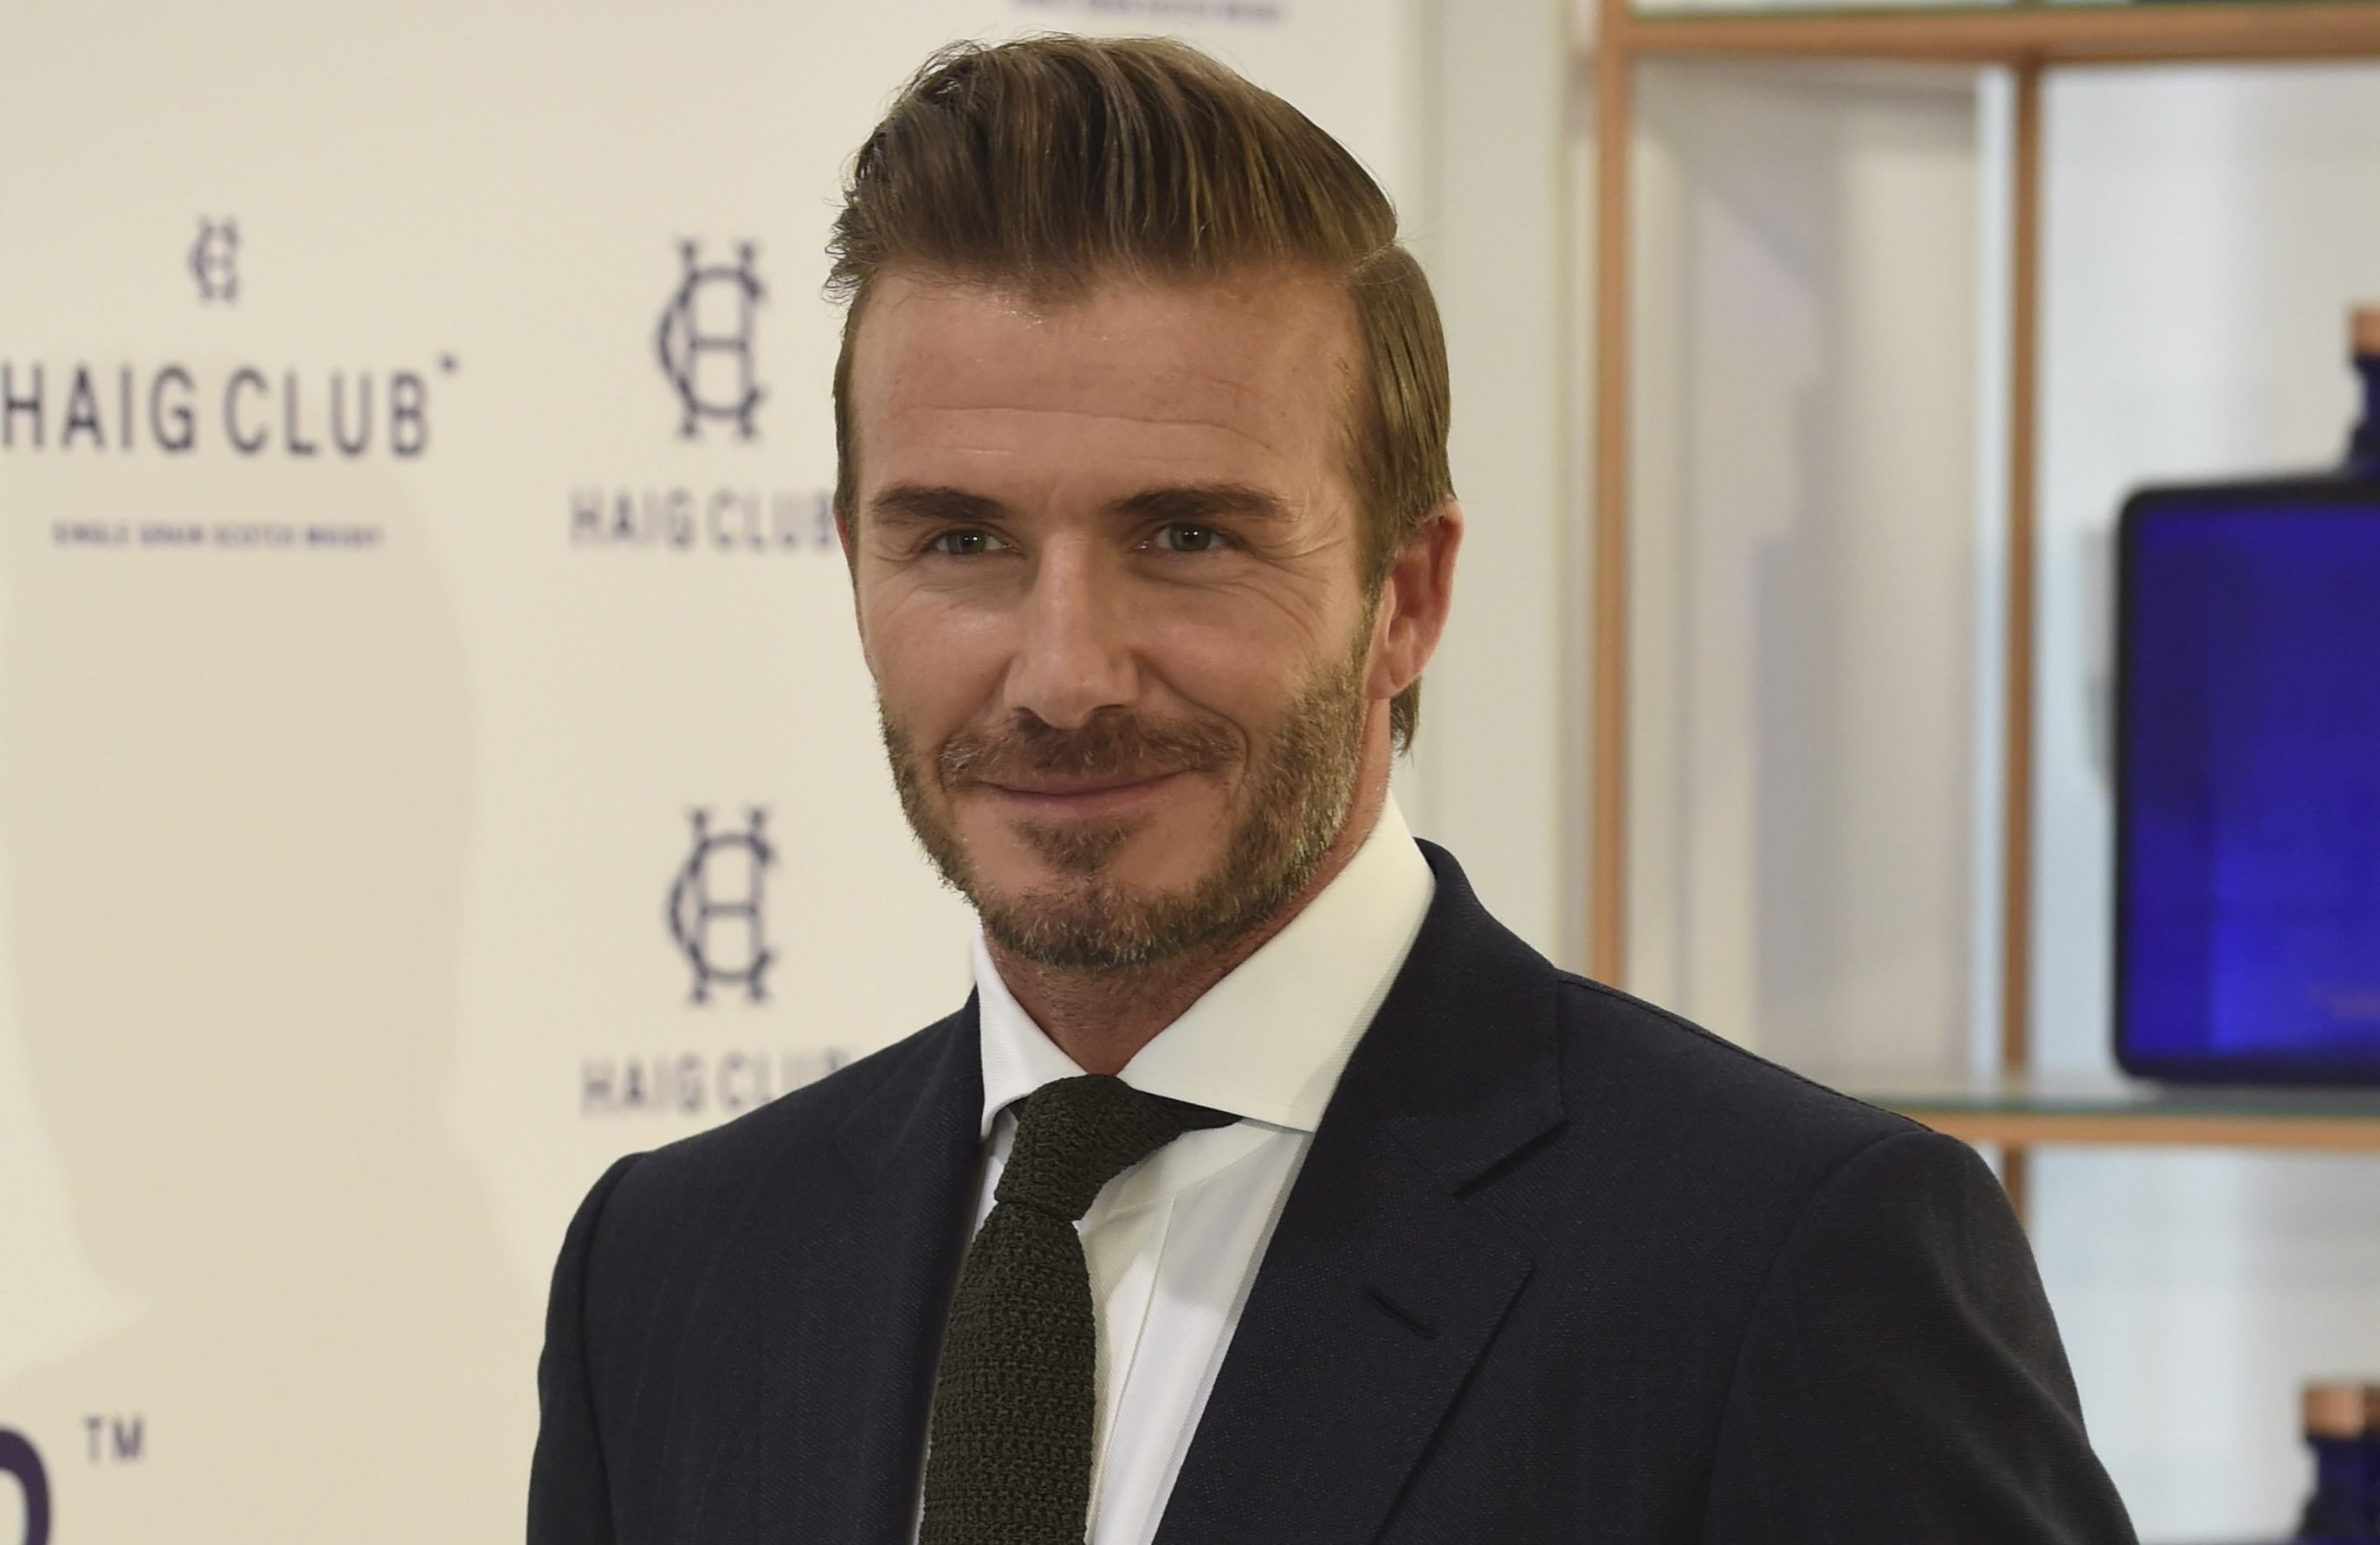 Embarrassed David Beckham cringes over extreme beauty blunder